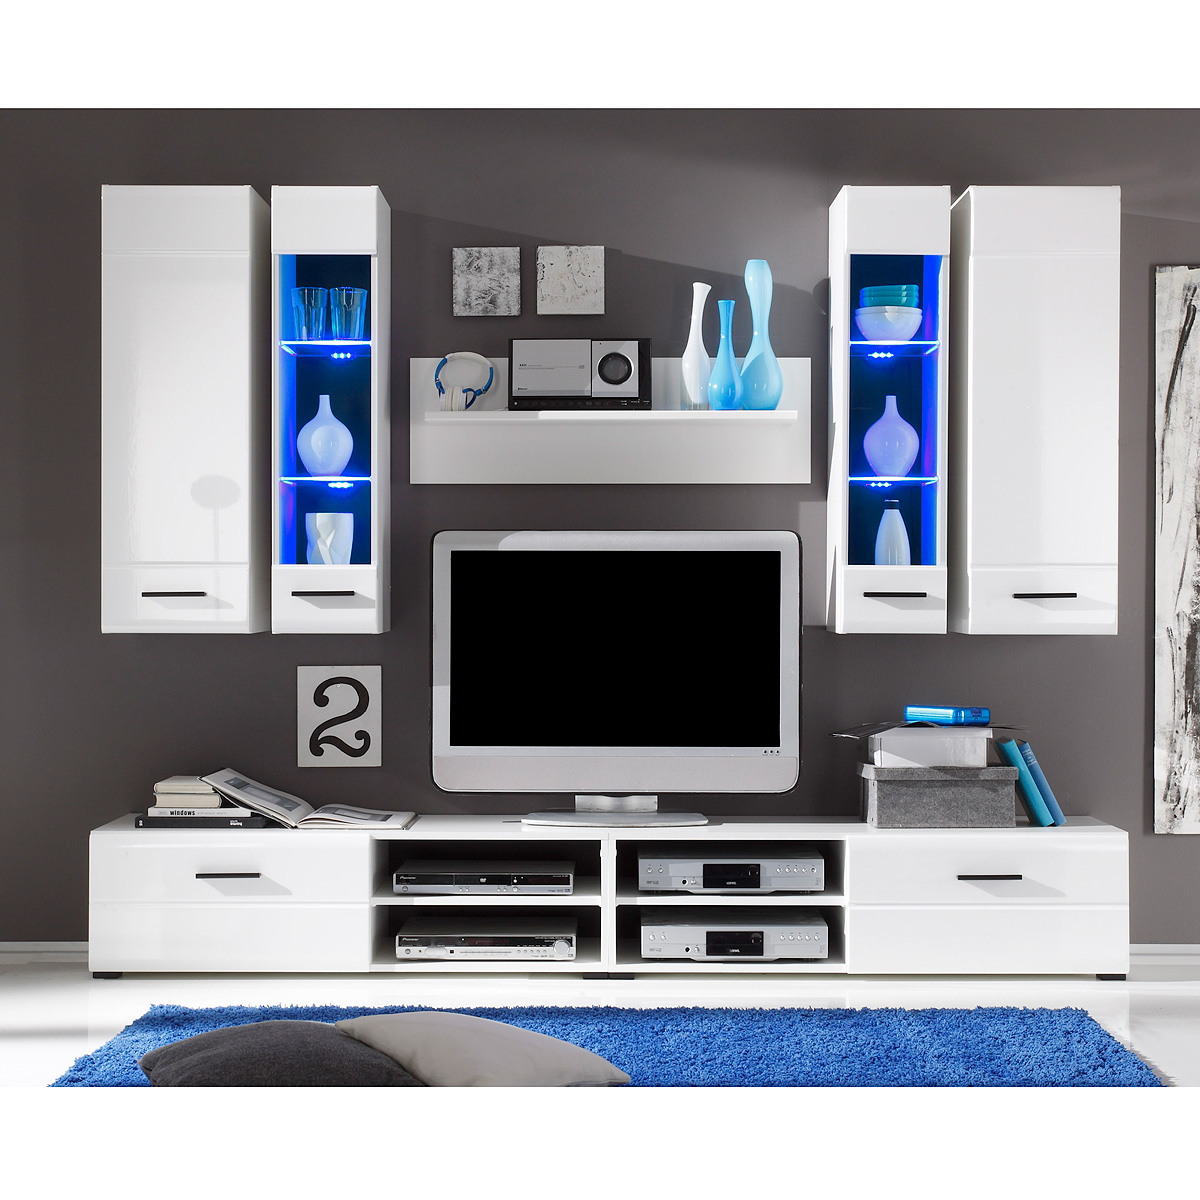 wohnwand force anbauwand wohnzimmer wohnkombi in wei hochglanz inkl led ebay. Black Bedroom Furniture Sets. Home Design Ideas